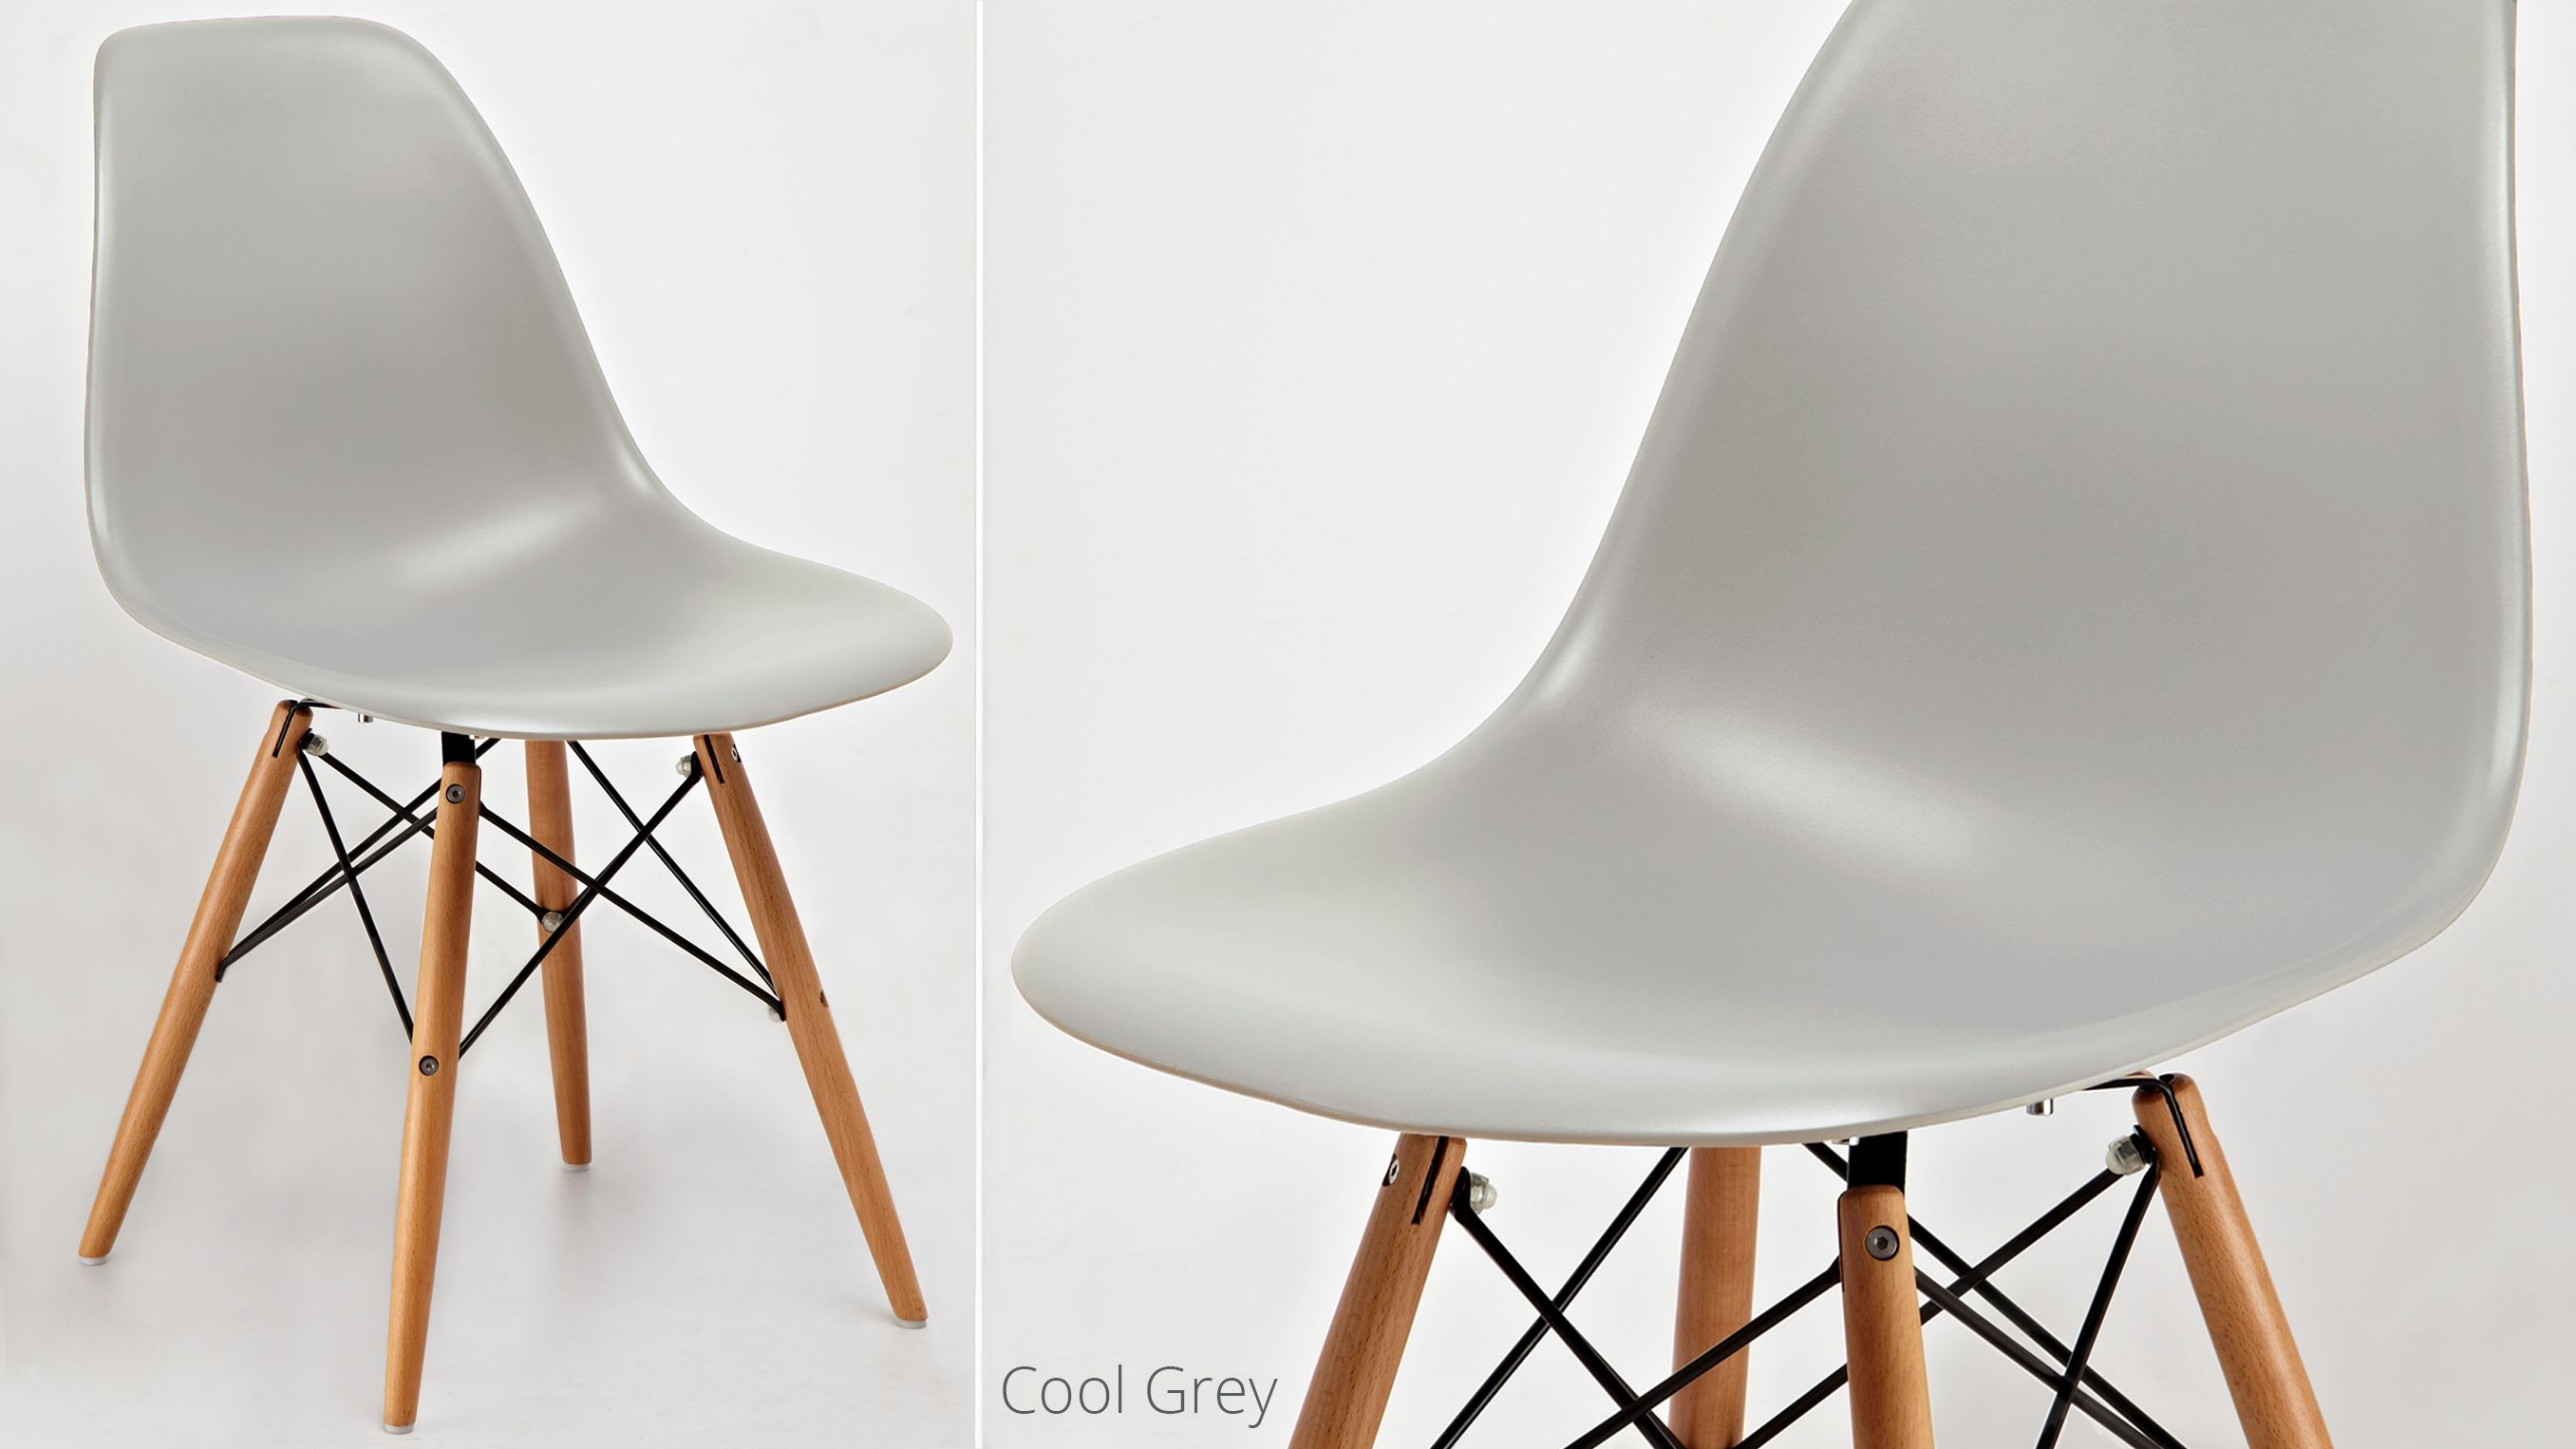 Eames Style Dining Chair Eames Style Dining Chair Eames Dining